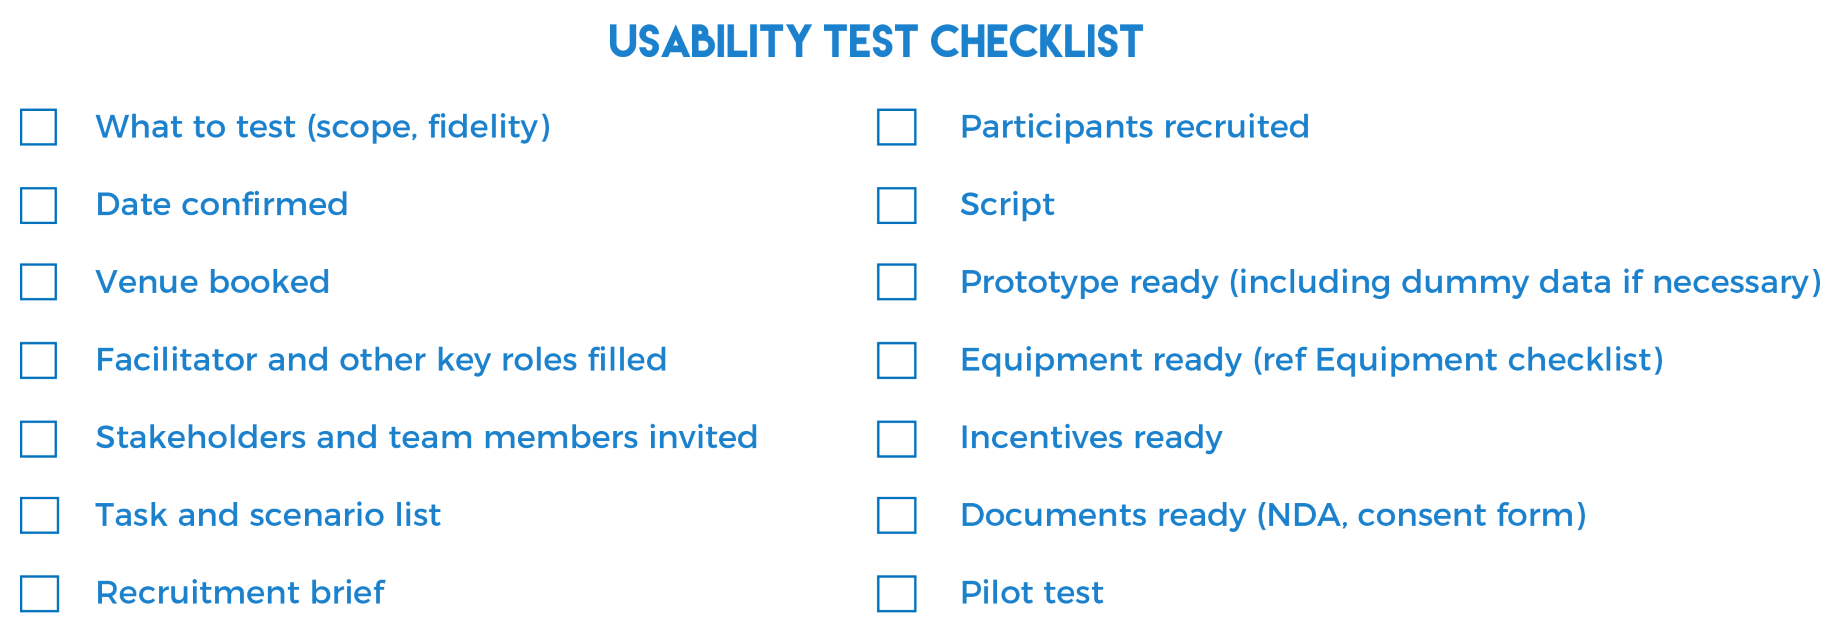 usability test checklists